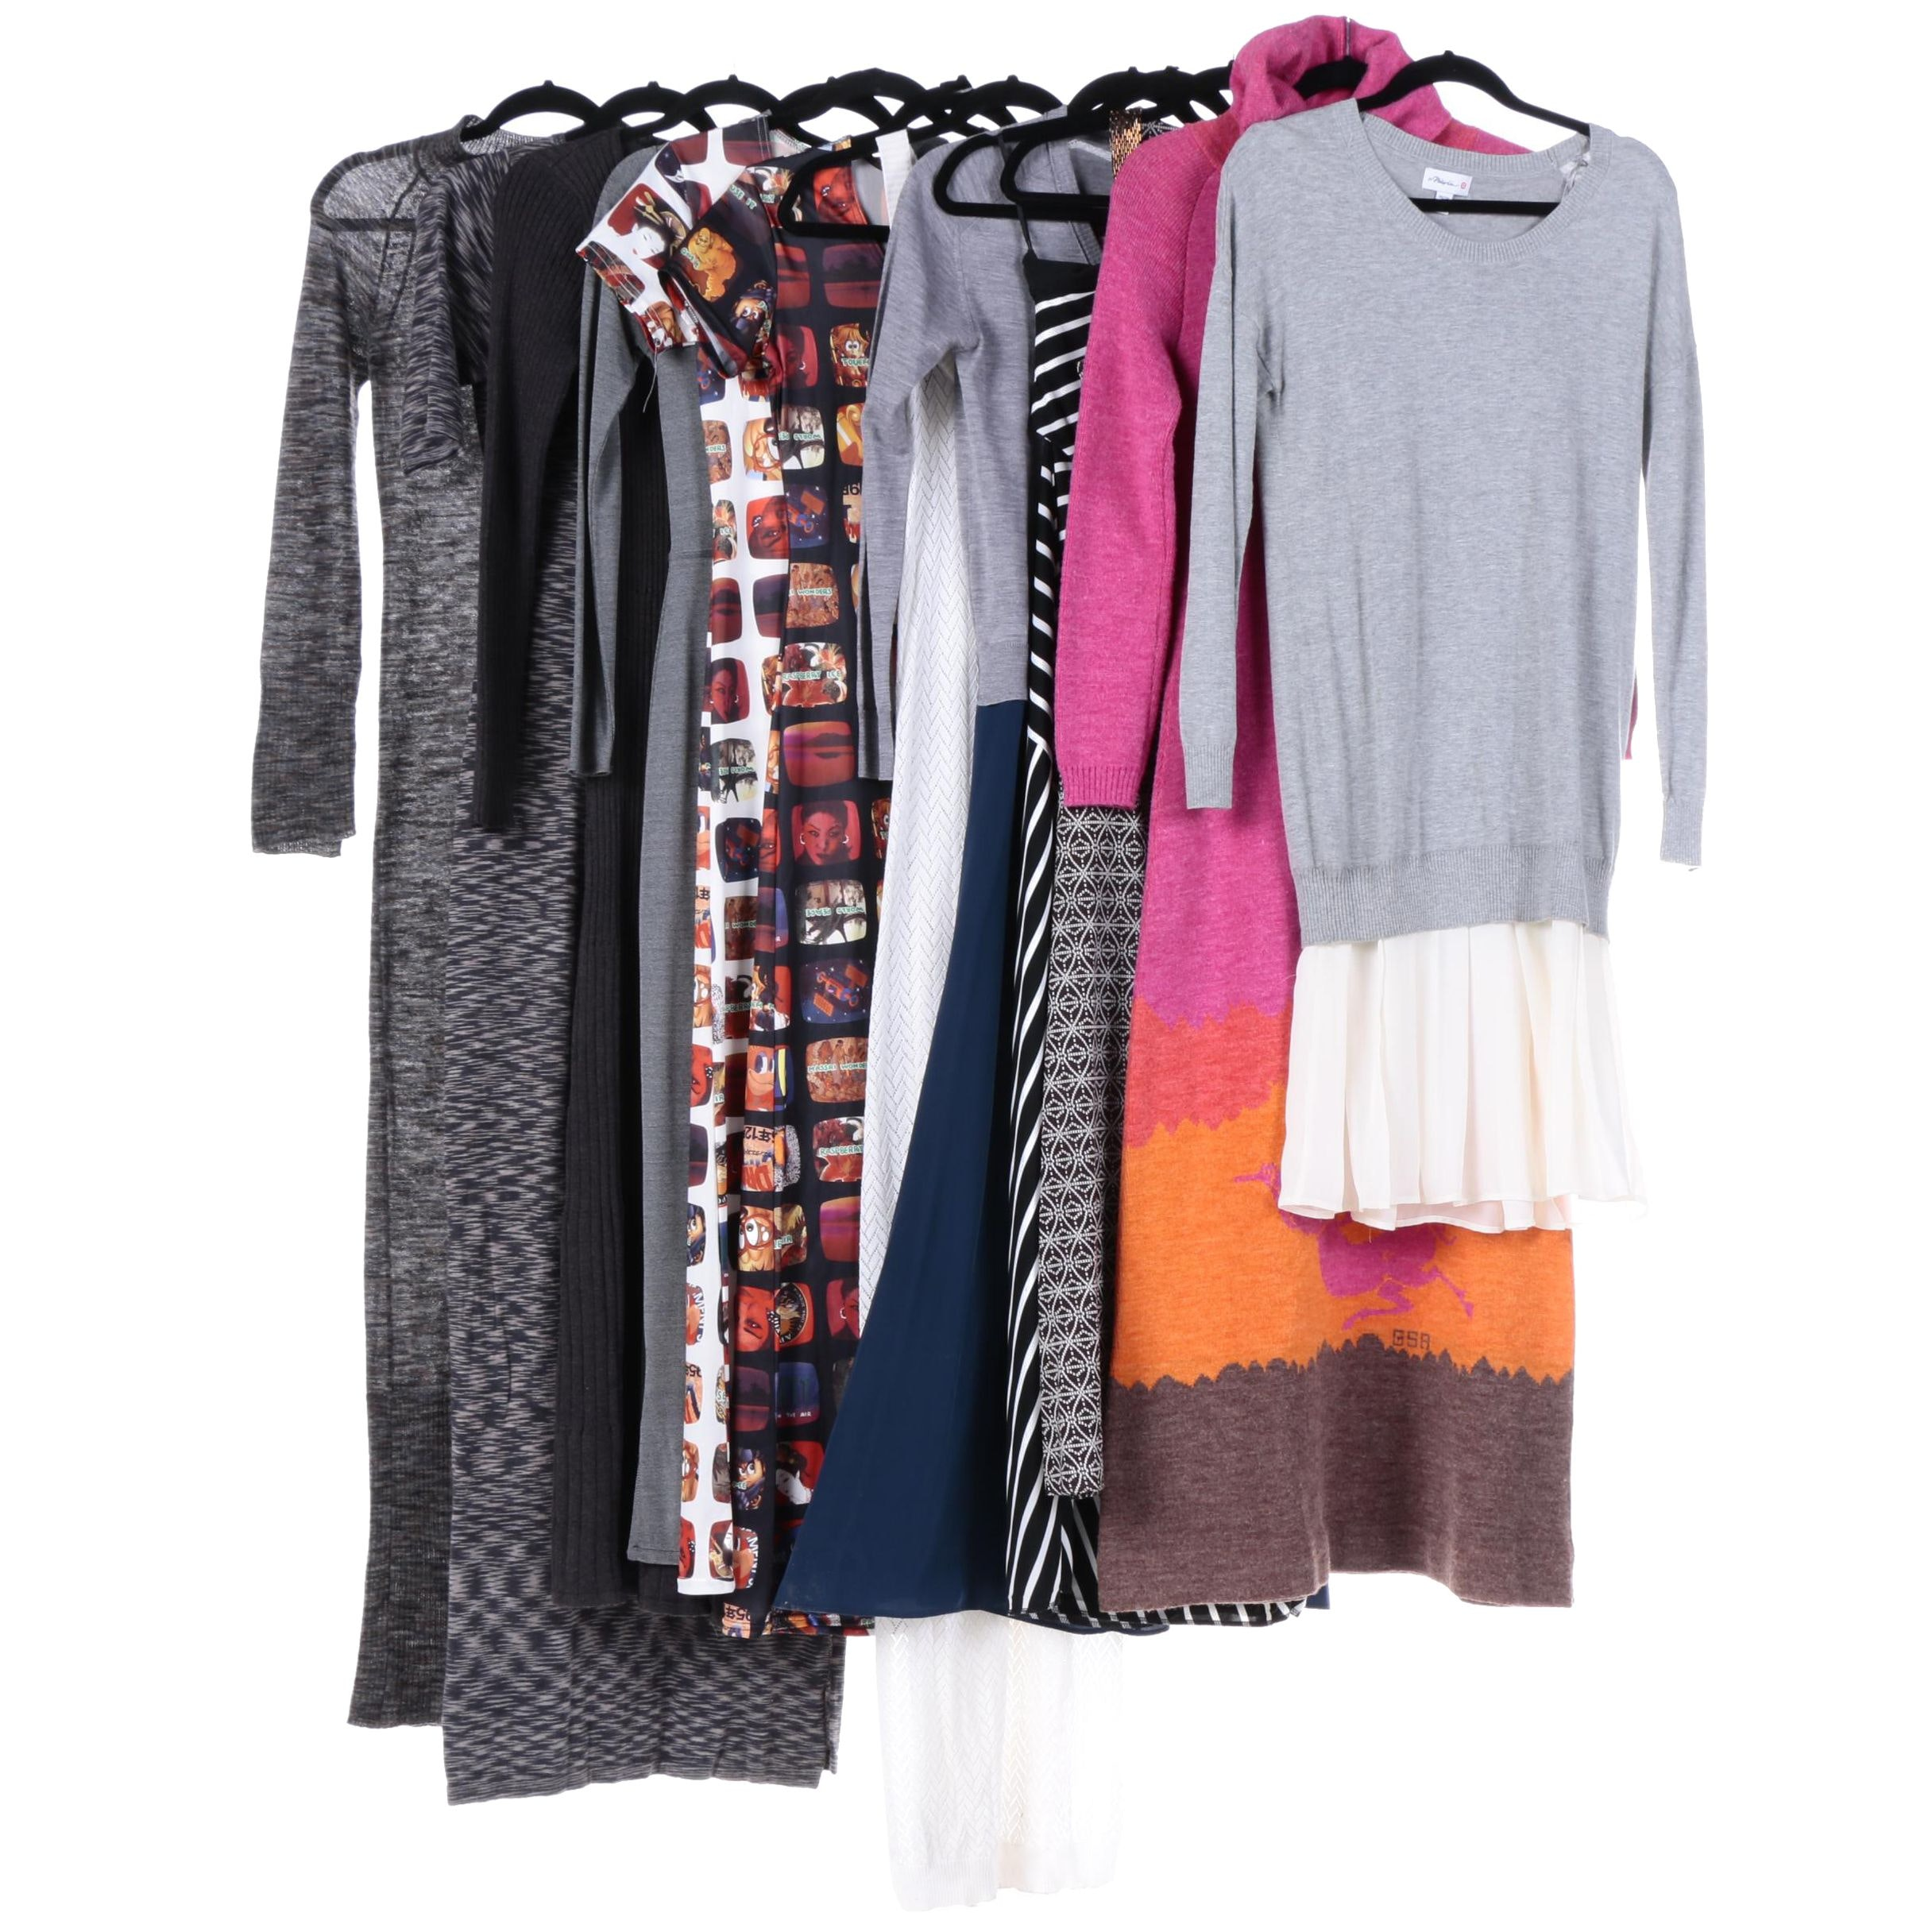 Women's Knit Dresses Including Tory Burch, Calvin Klein, LAUREN Ralph Lauren